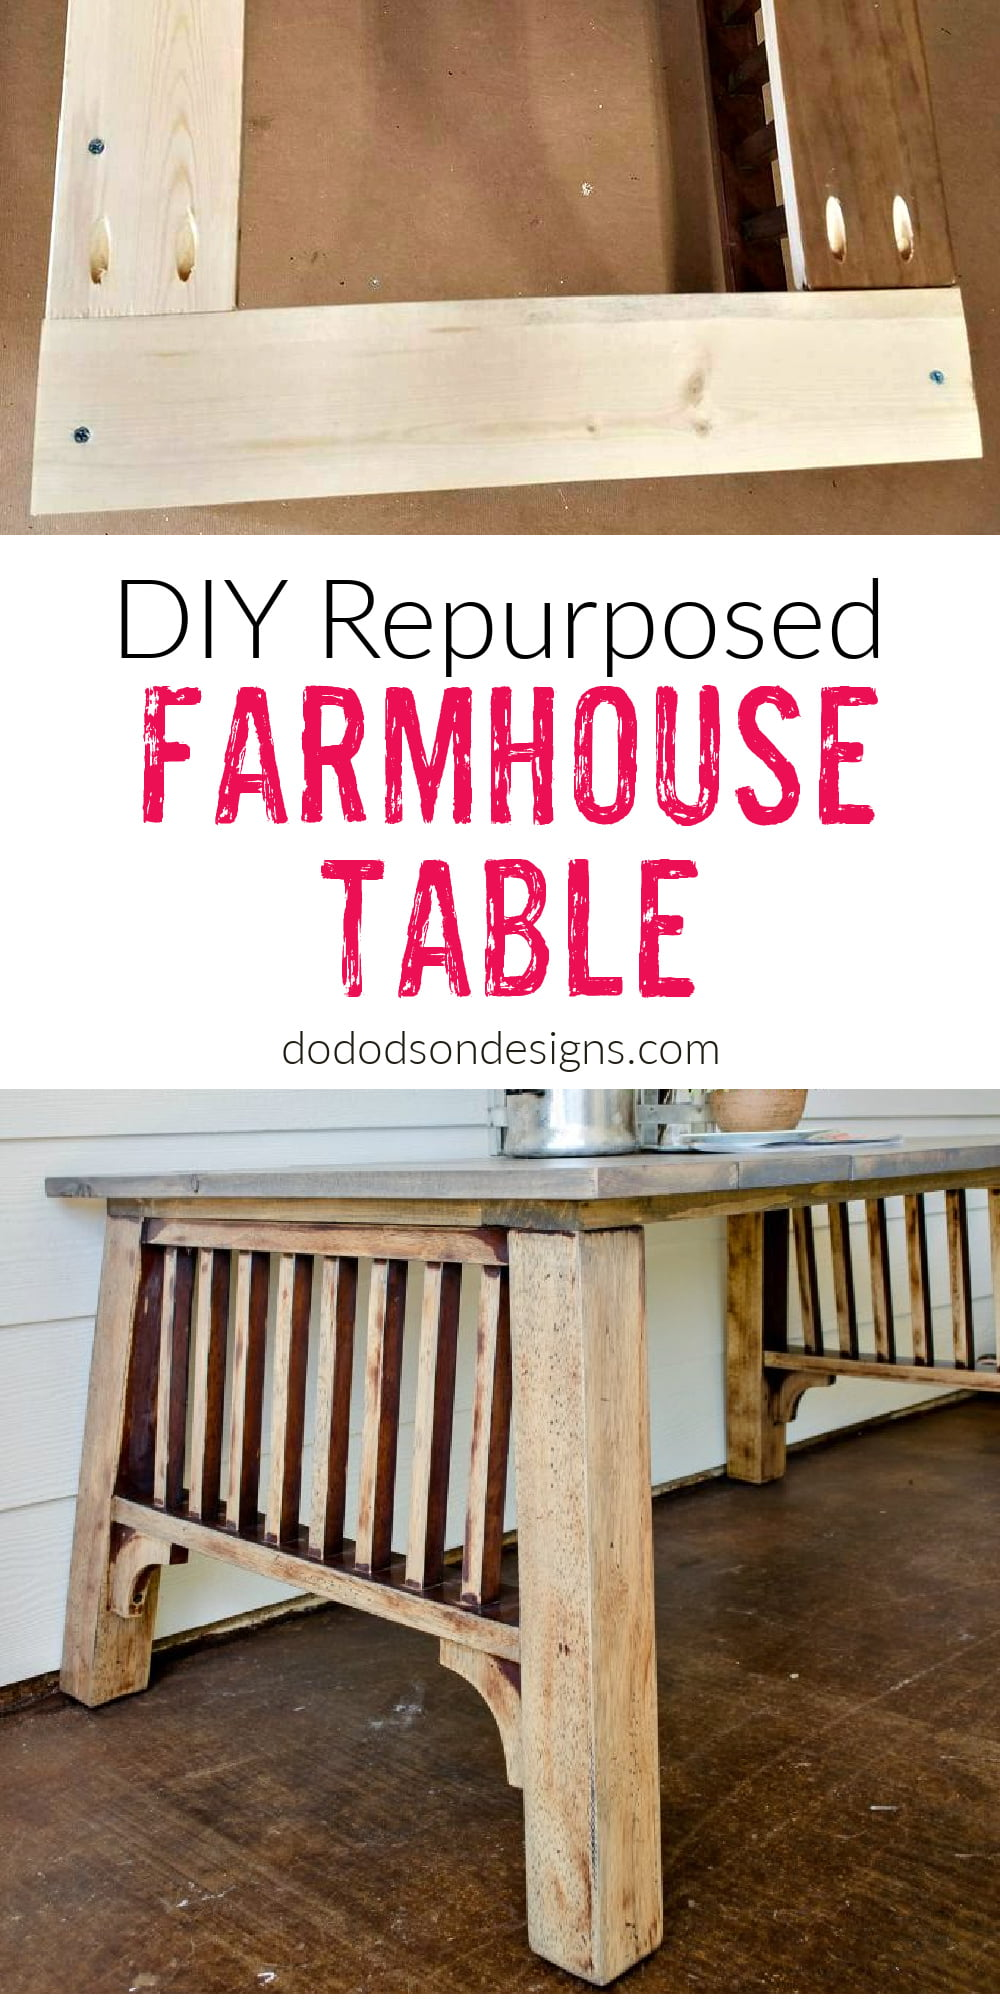 How I Made A DIY Farmhouse Table From Repurposed Curbside Junk